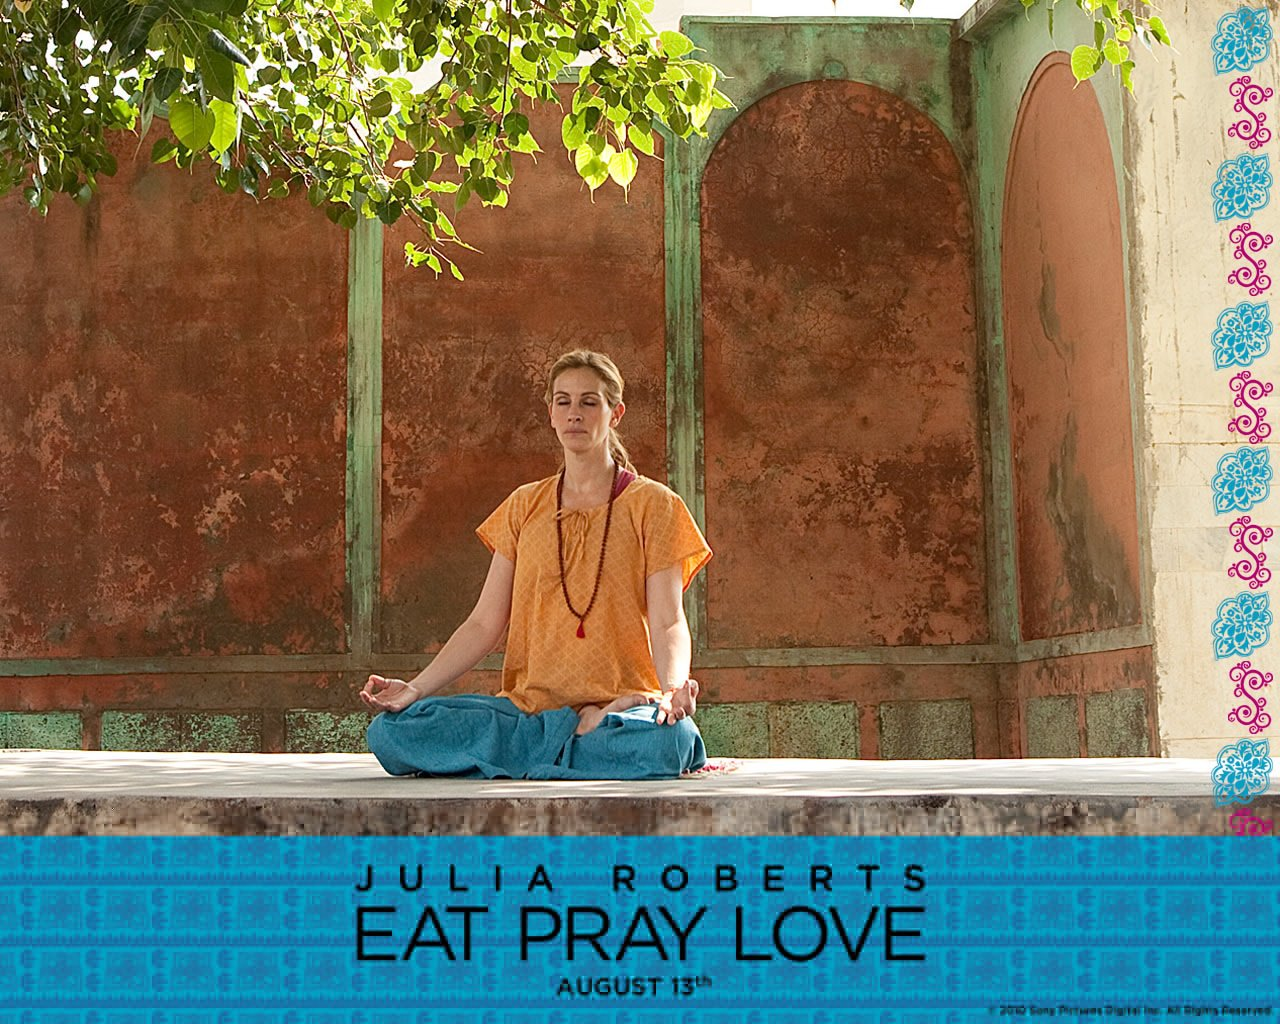 Eat pray love travel inspirational movies